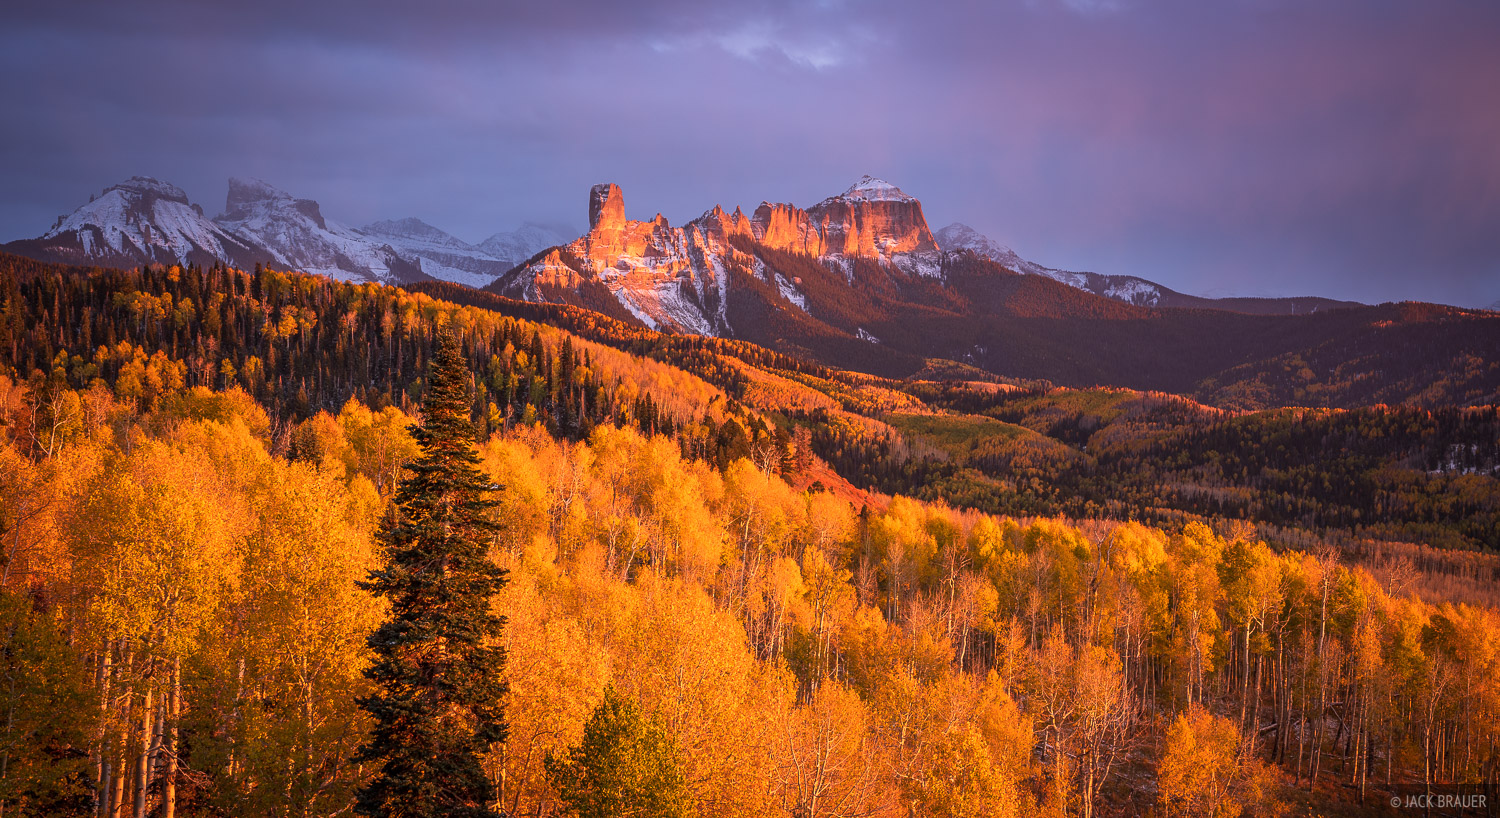 Cimarrons, Colorado, San Juan Mountains, aspens, Courthouse Mountain, Chimney Rock, autumn, photo